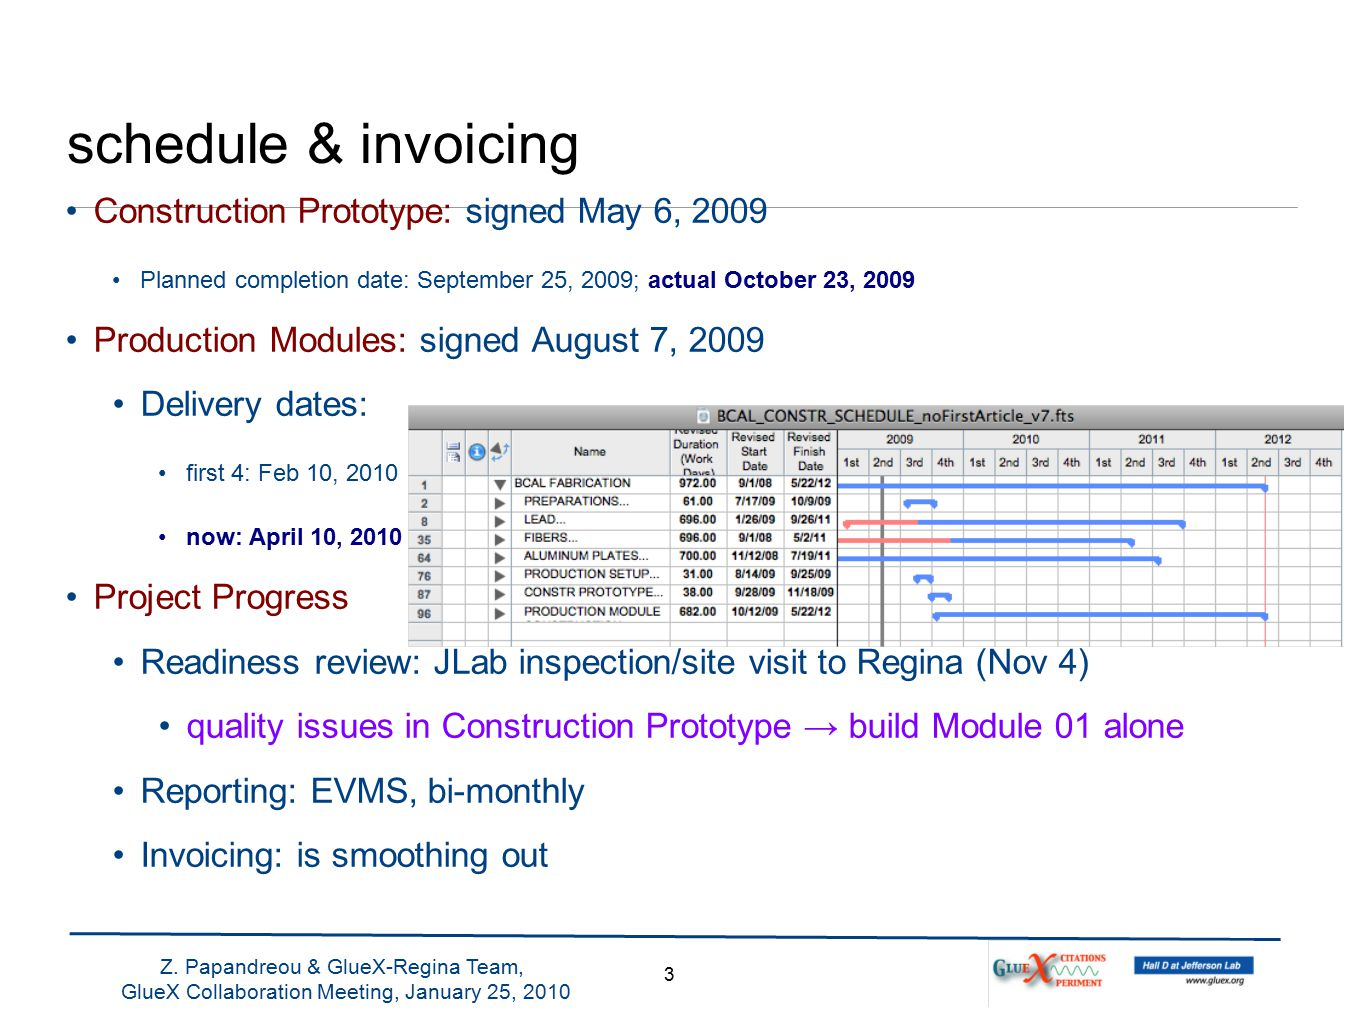 schedule & invoicing Construction Prototype: signed May 6, 2009 Planned completion date: September 25, 2009; actual October 23, 2009 Production Modules: signed August 7, 2009 Delivery dates: first 4: Feb 10, 2010 now: April 10, 2010 Project Progress Readiness review: JLab inspection/site visit to Regina (Nov 4) quality issues in Construction Prototype → build Module 01 alone Reporting: EVMS, bi-monthly Invoicing: is smoothing out 3 Z.